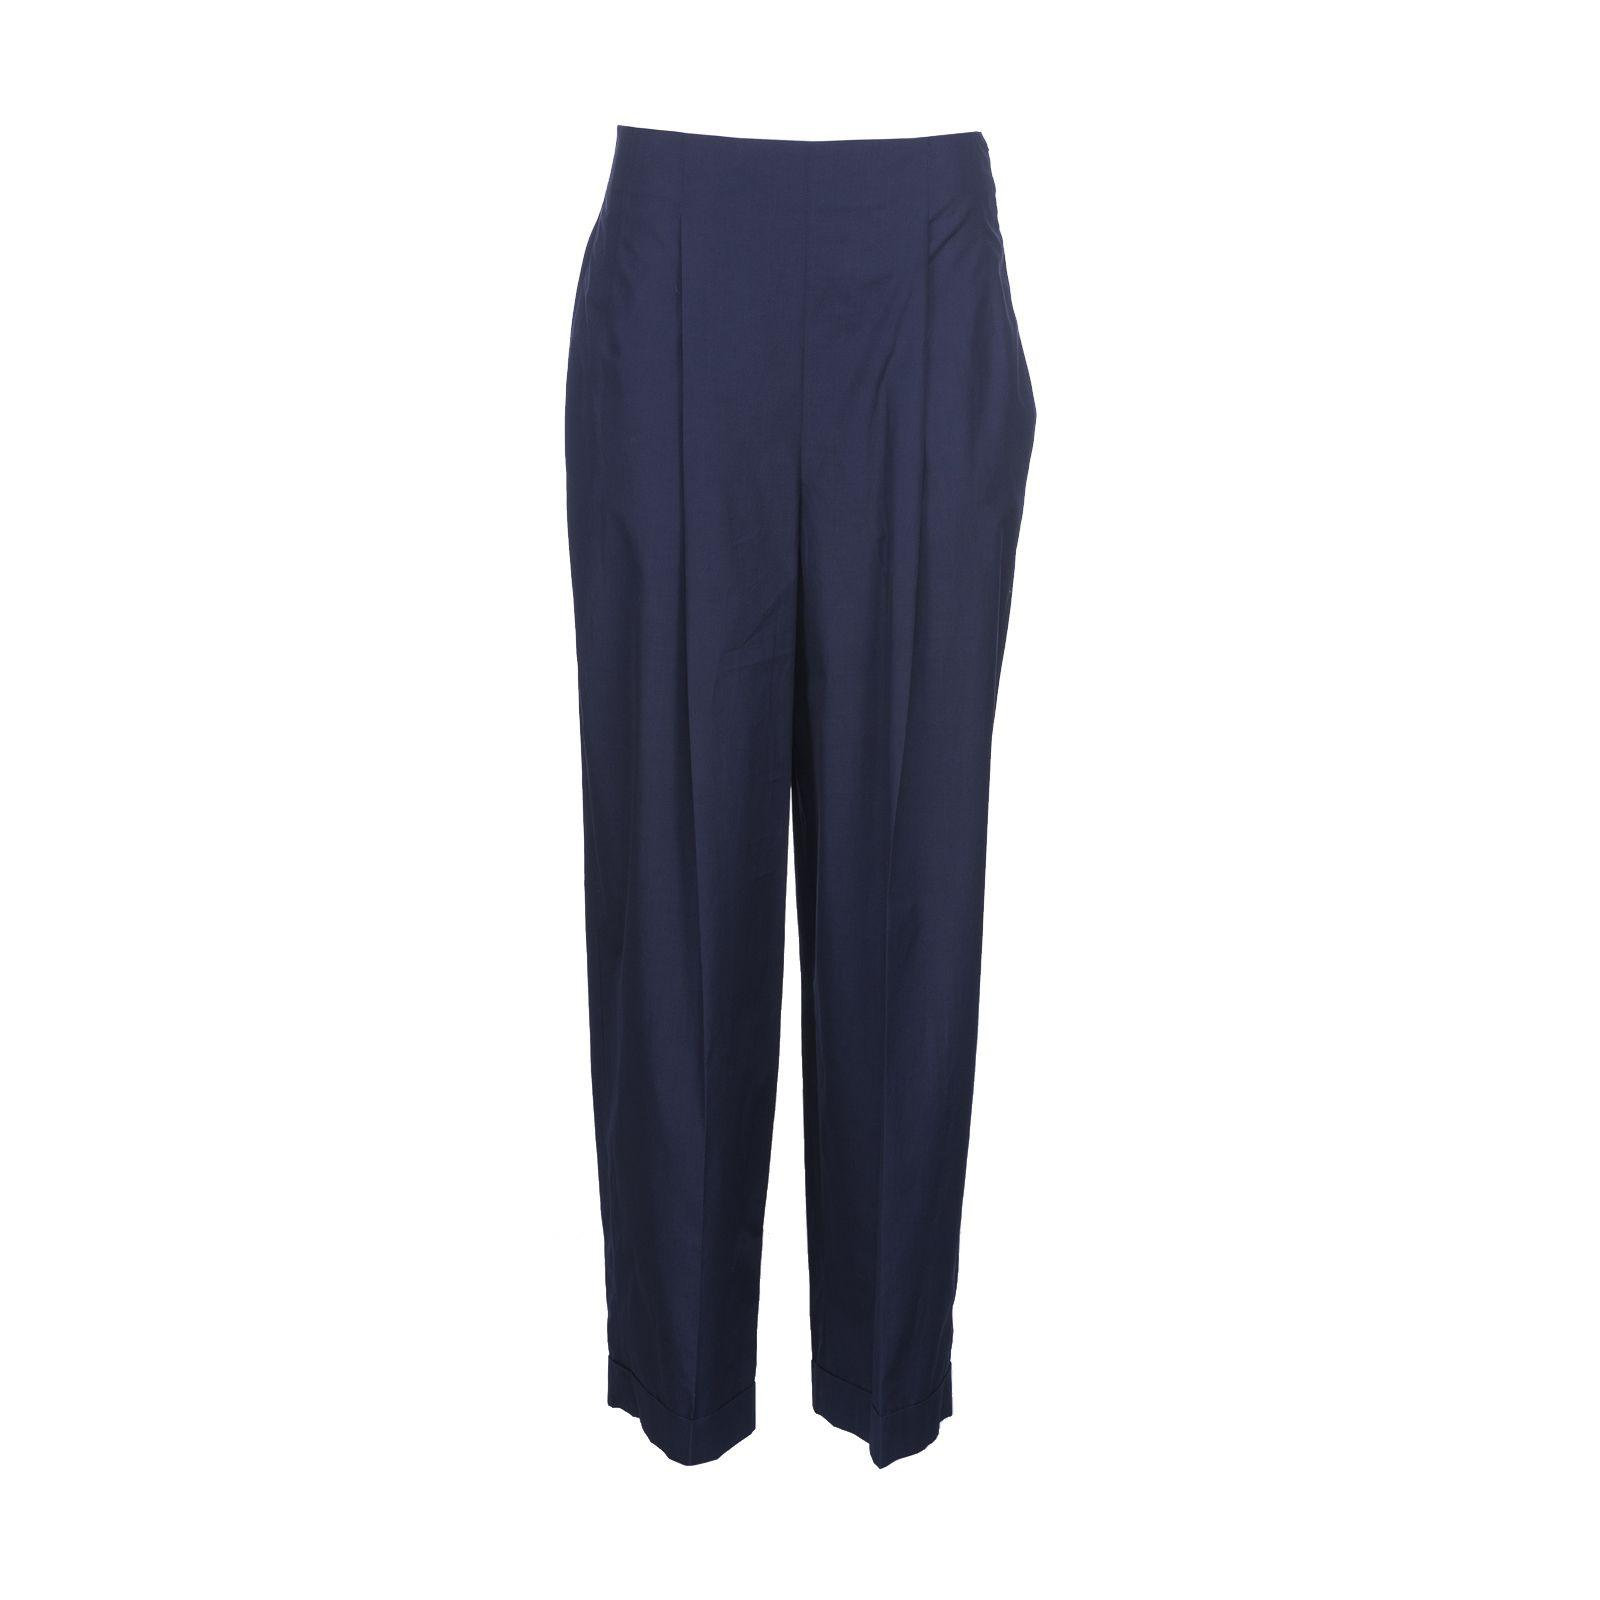 Salvatore Ferragamo Cropped Trousers In Navy